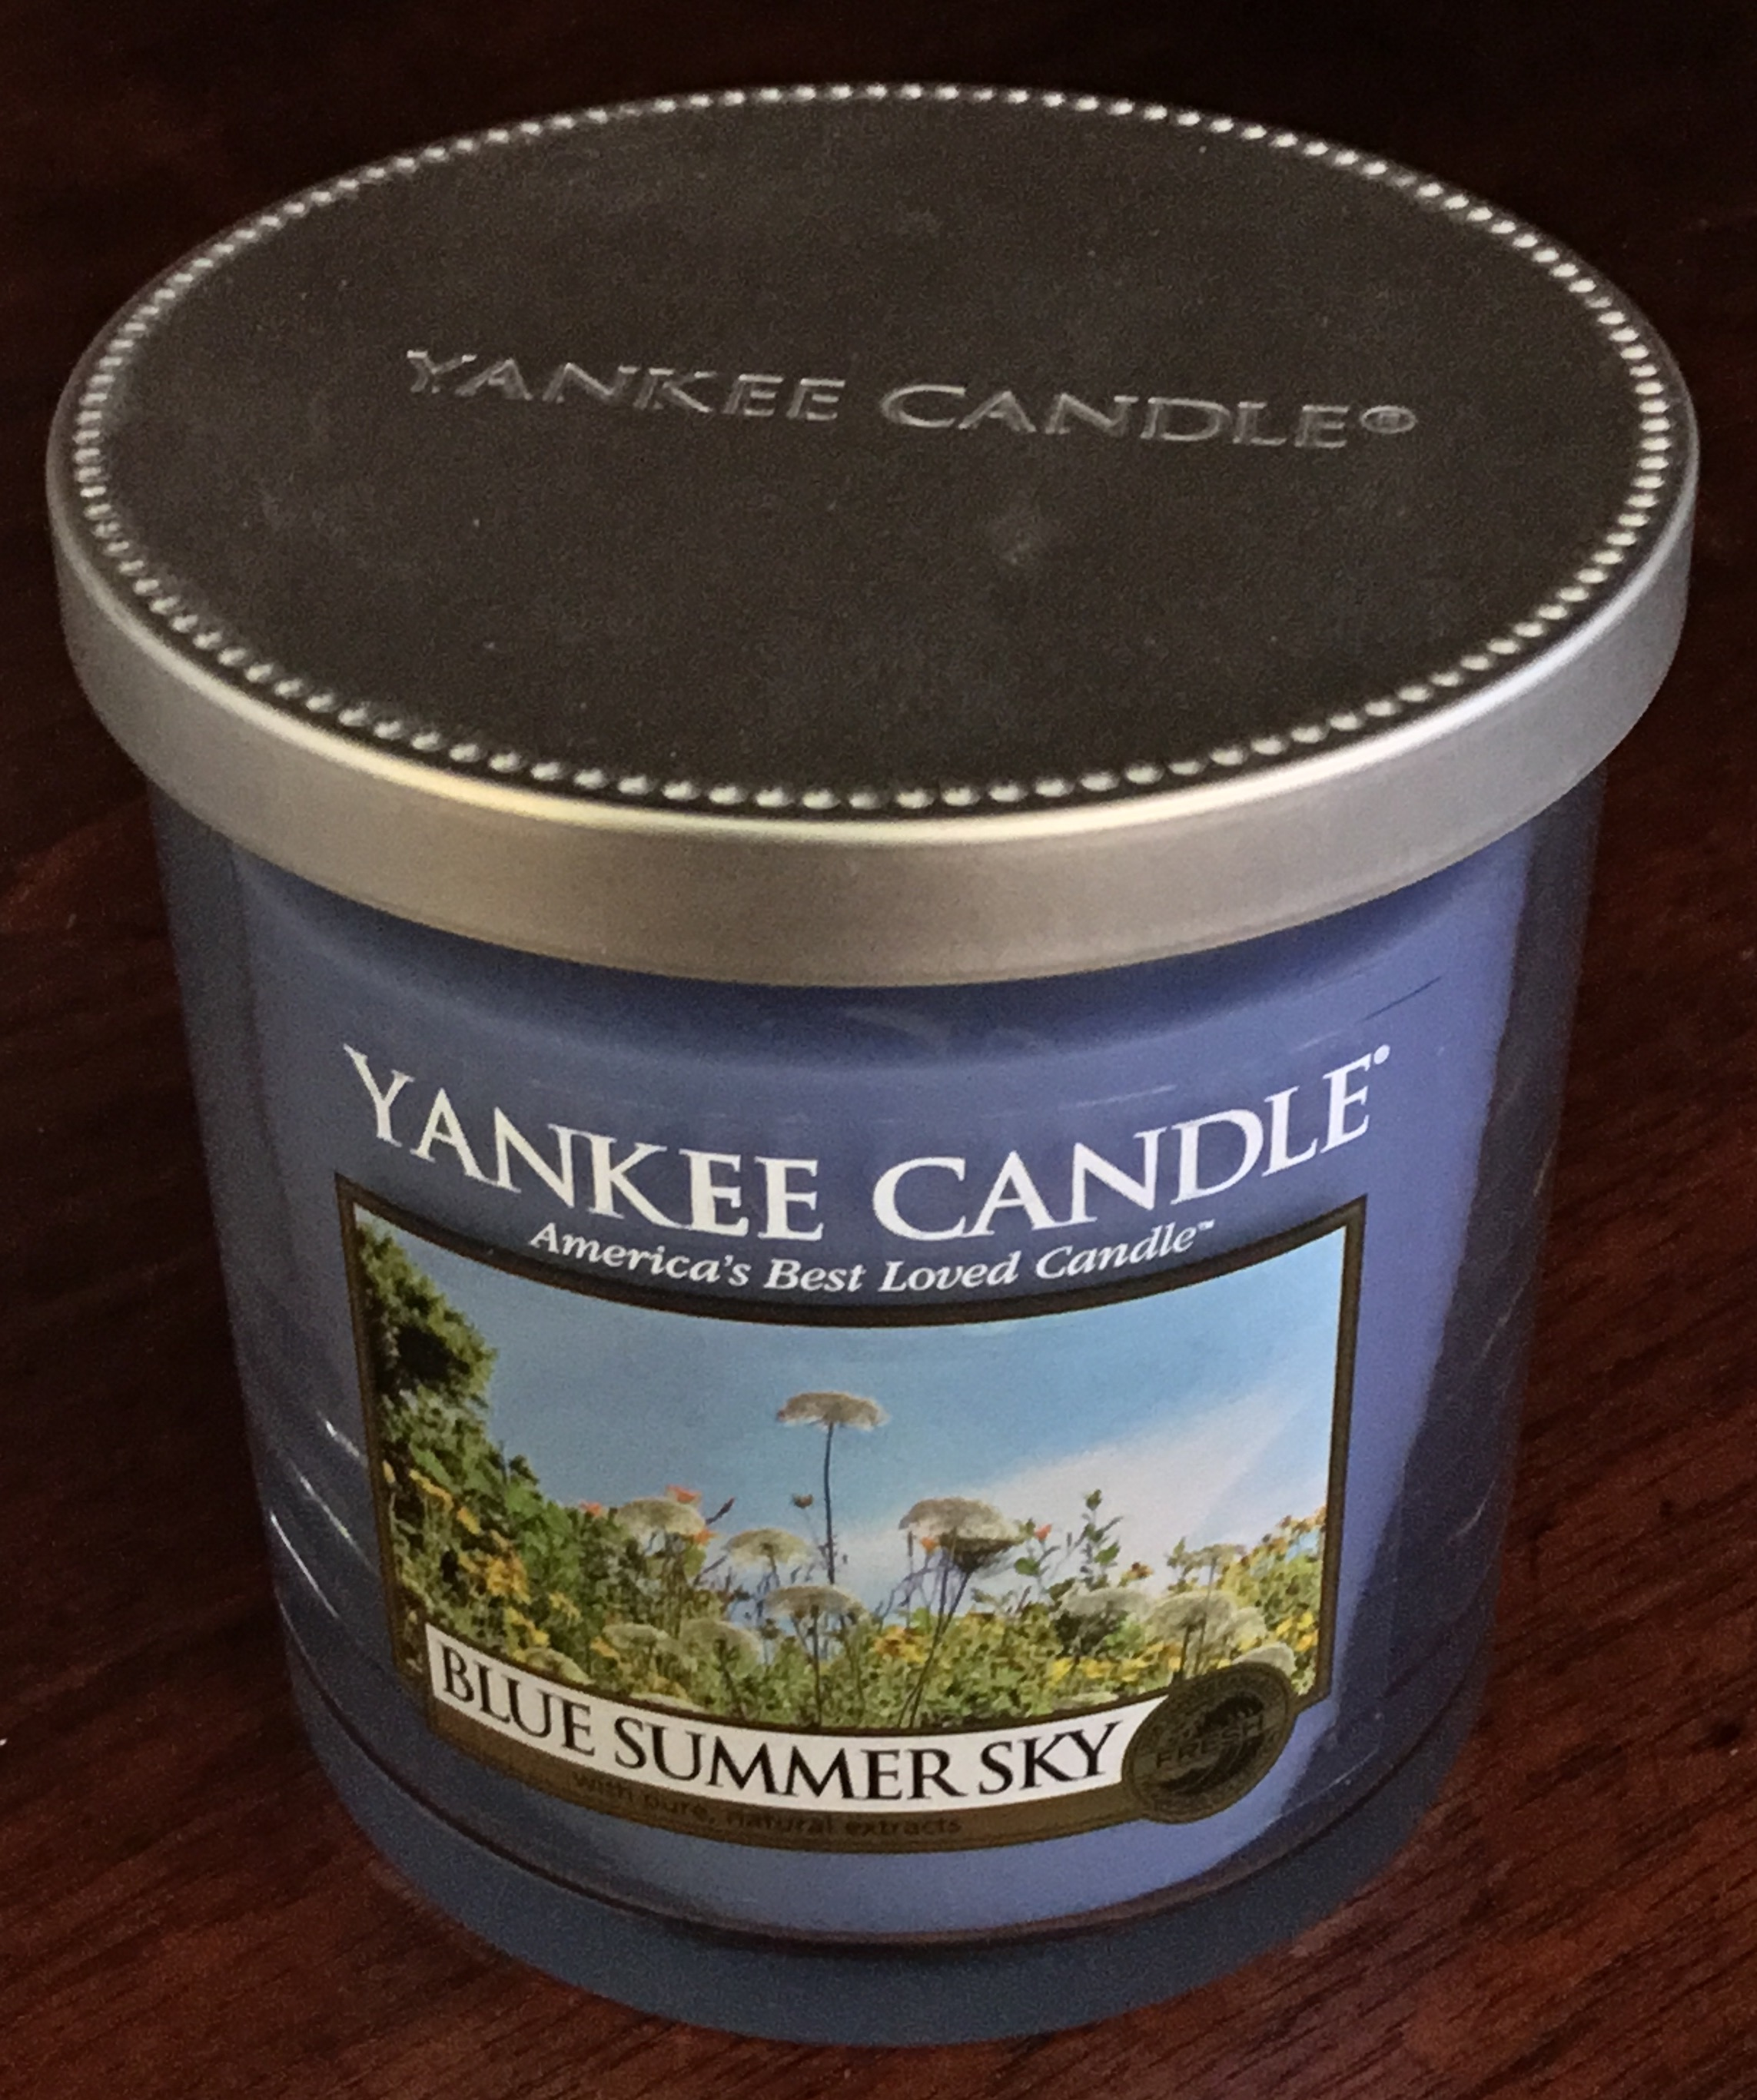 Yankee Candle Blue Summer Sky Candle